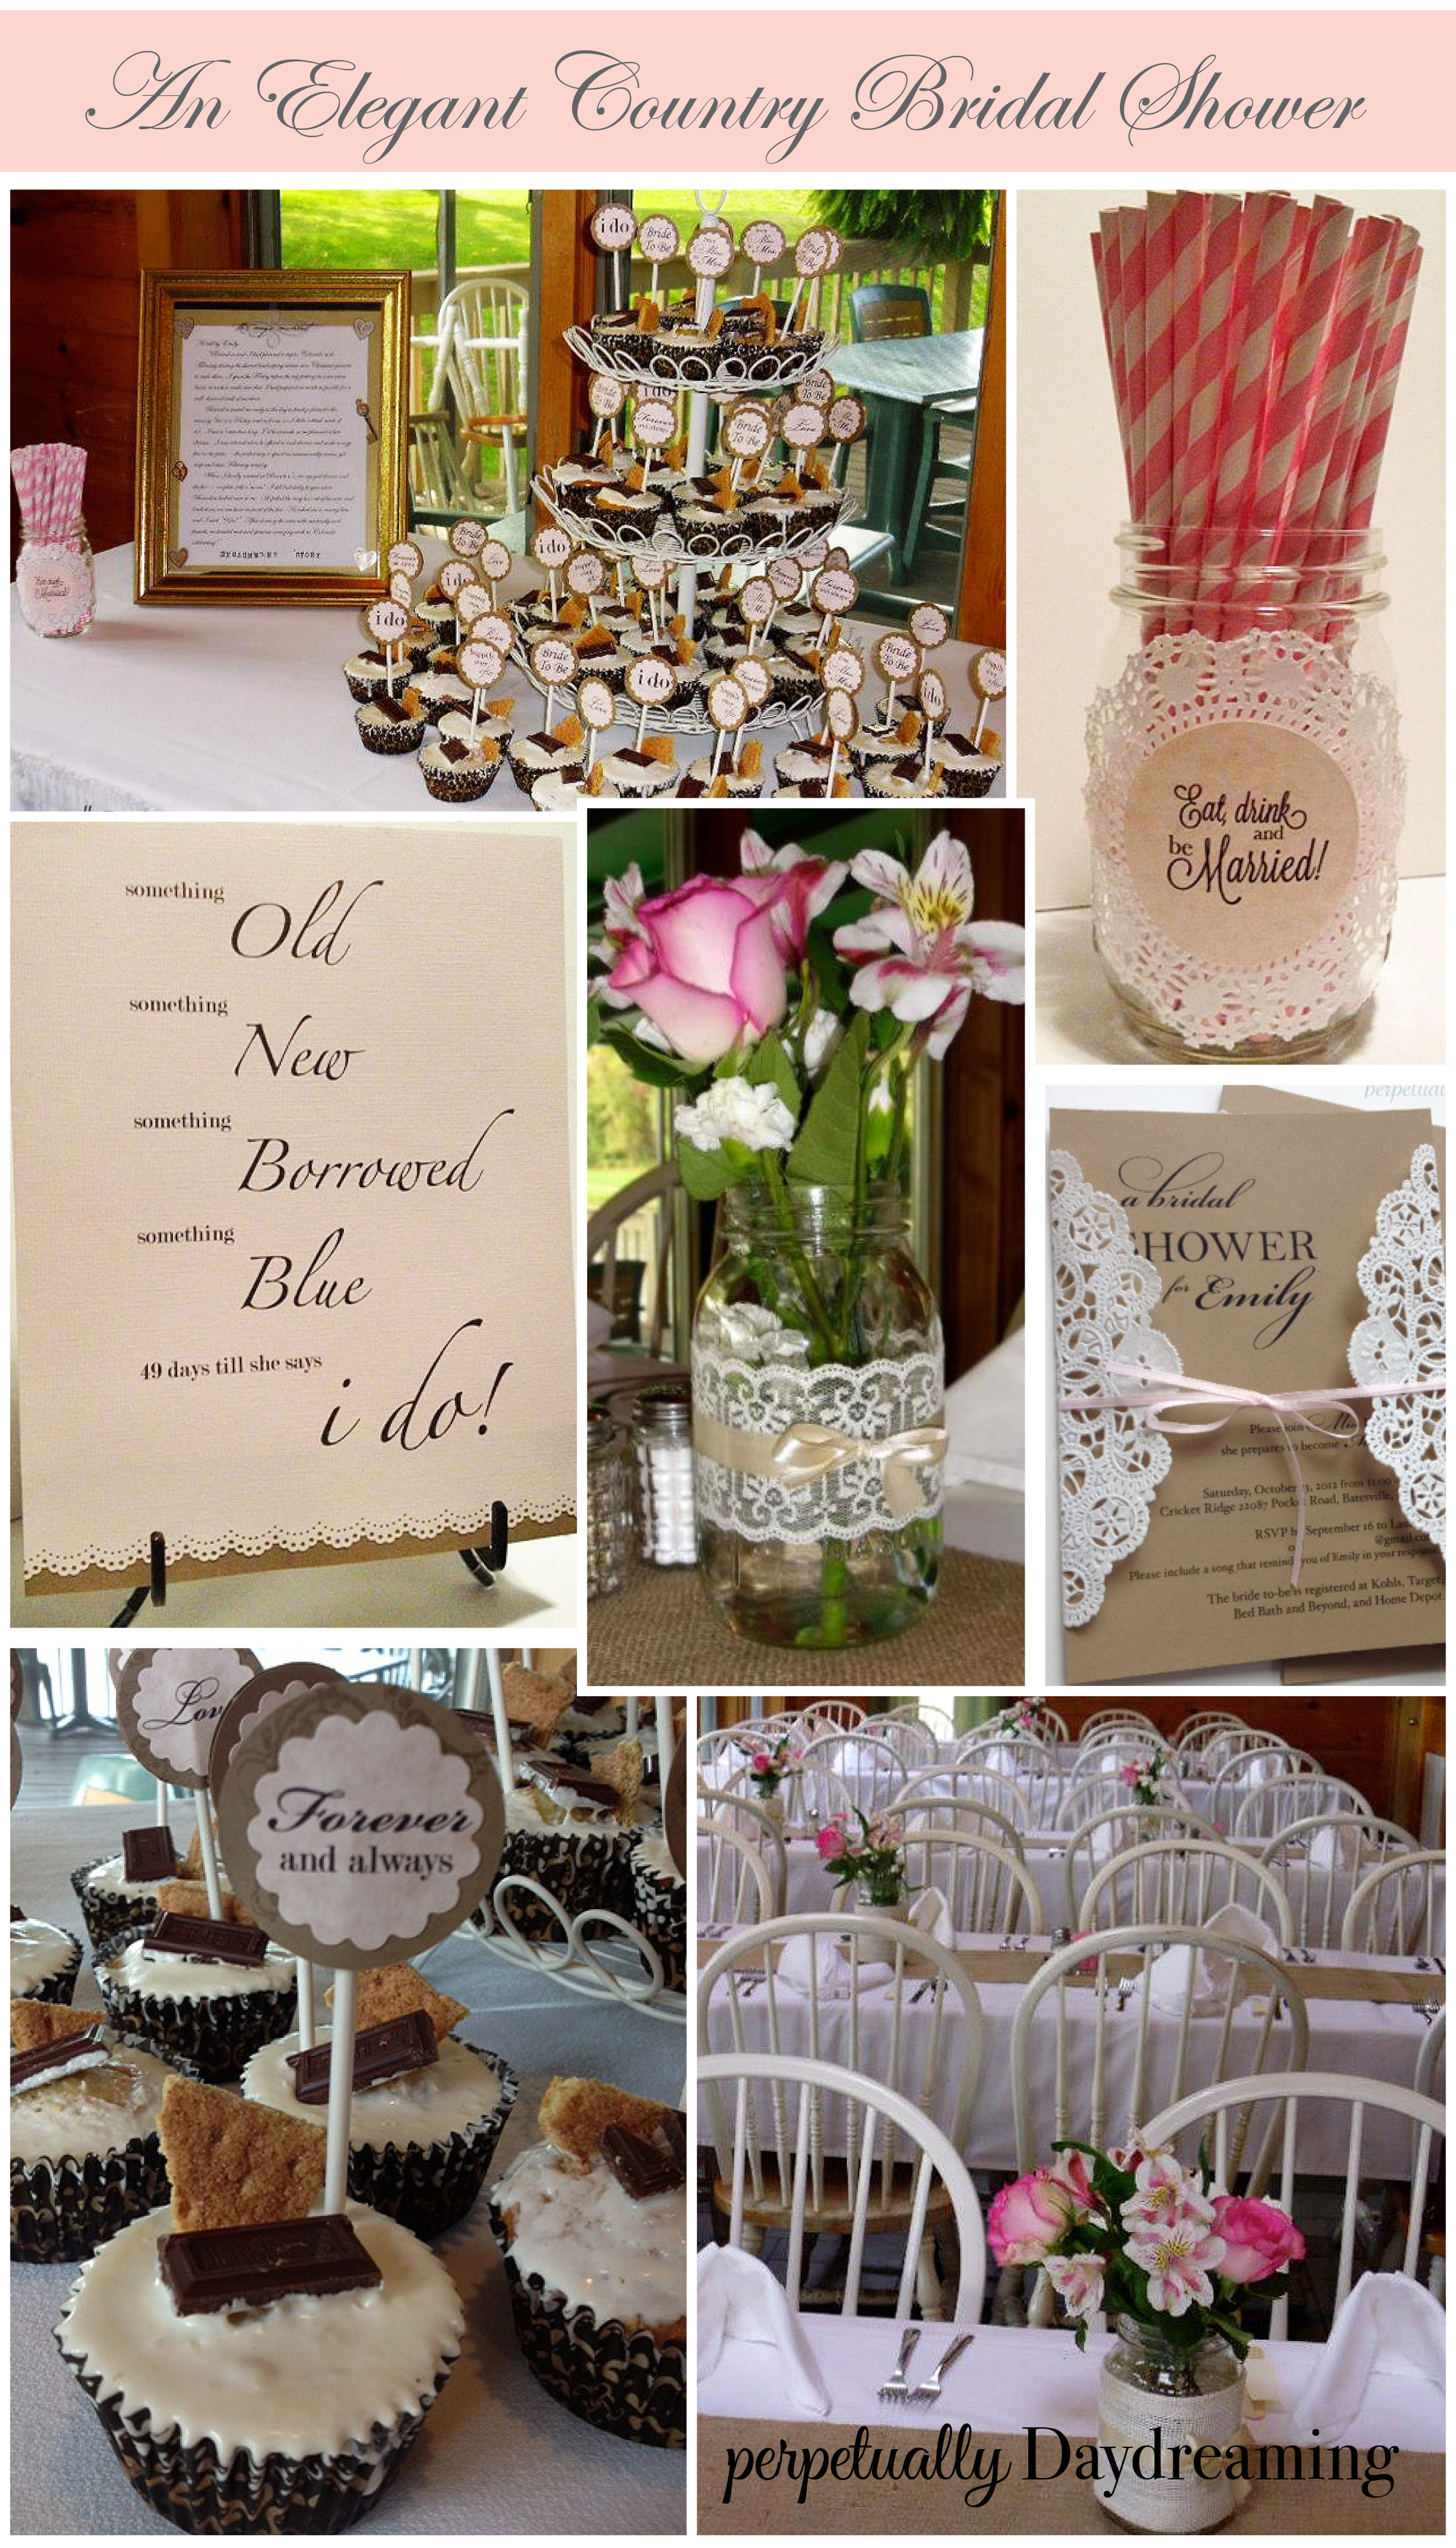 The Elegant Country Bridal Shower  Perpetually Daydreaming